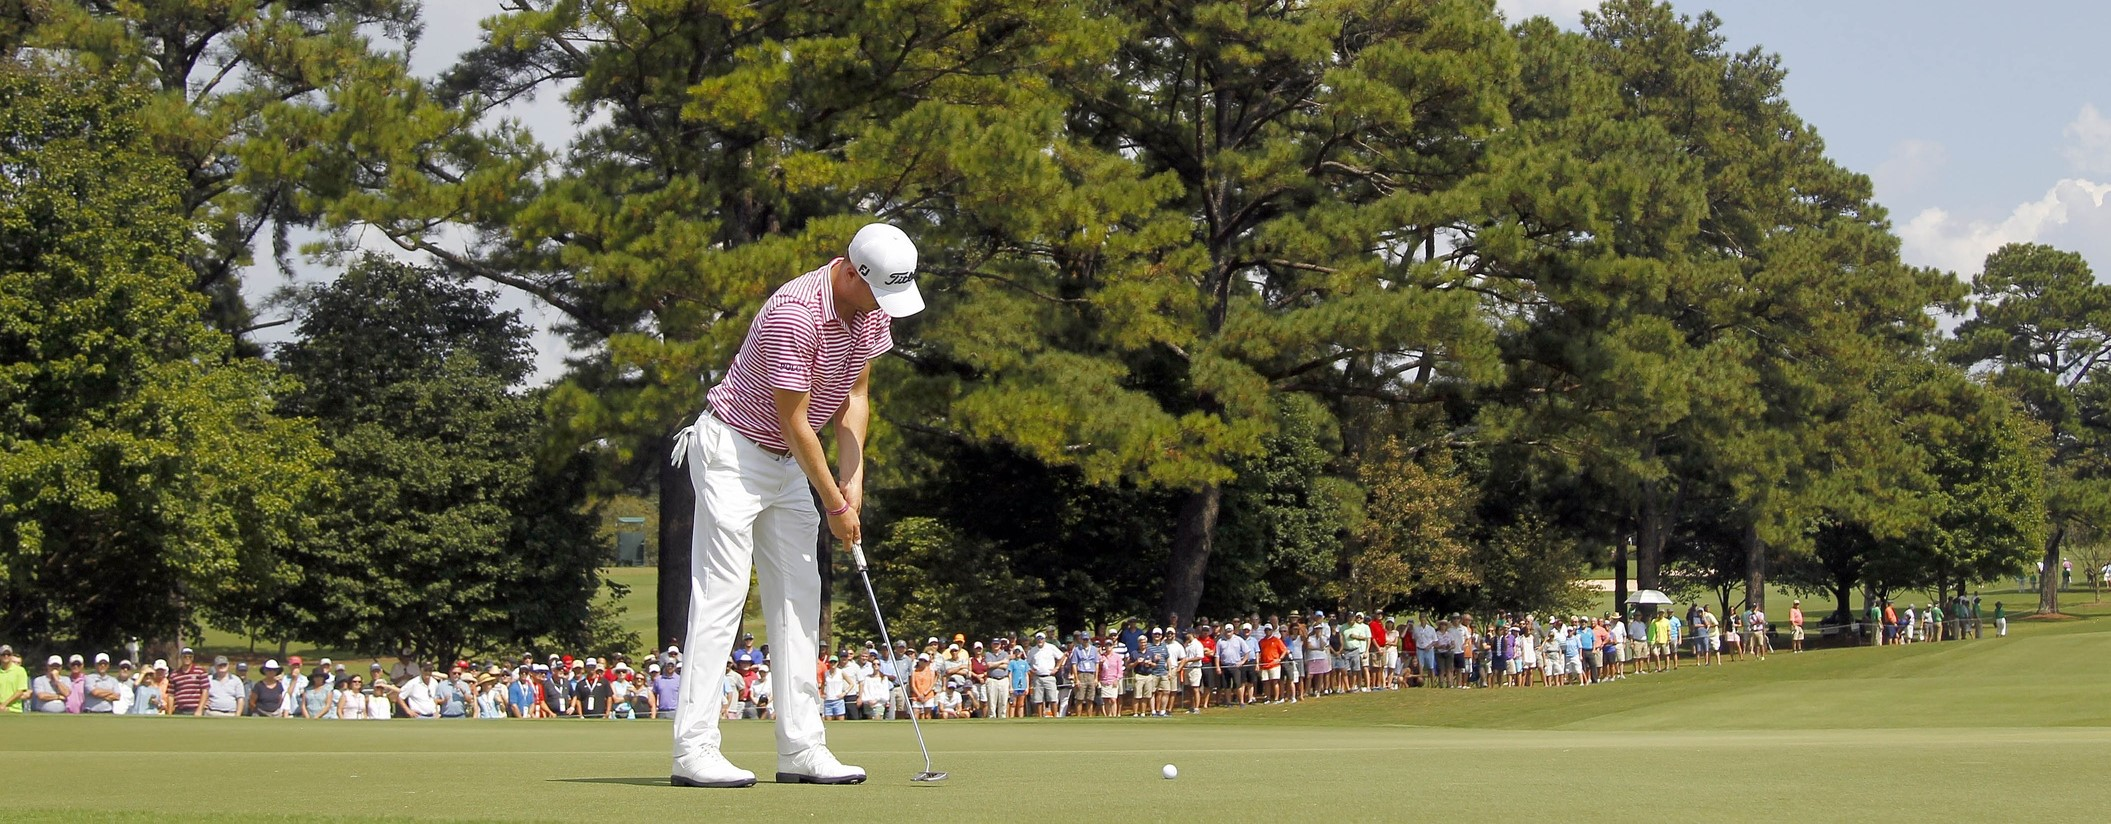 Tour Championship: Justin Thomas moves into tie for the lead, favored after two rounds article feature image